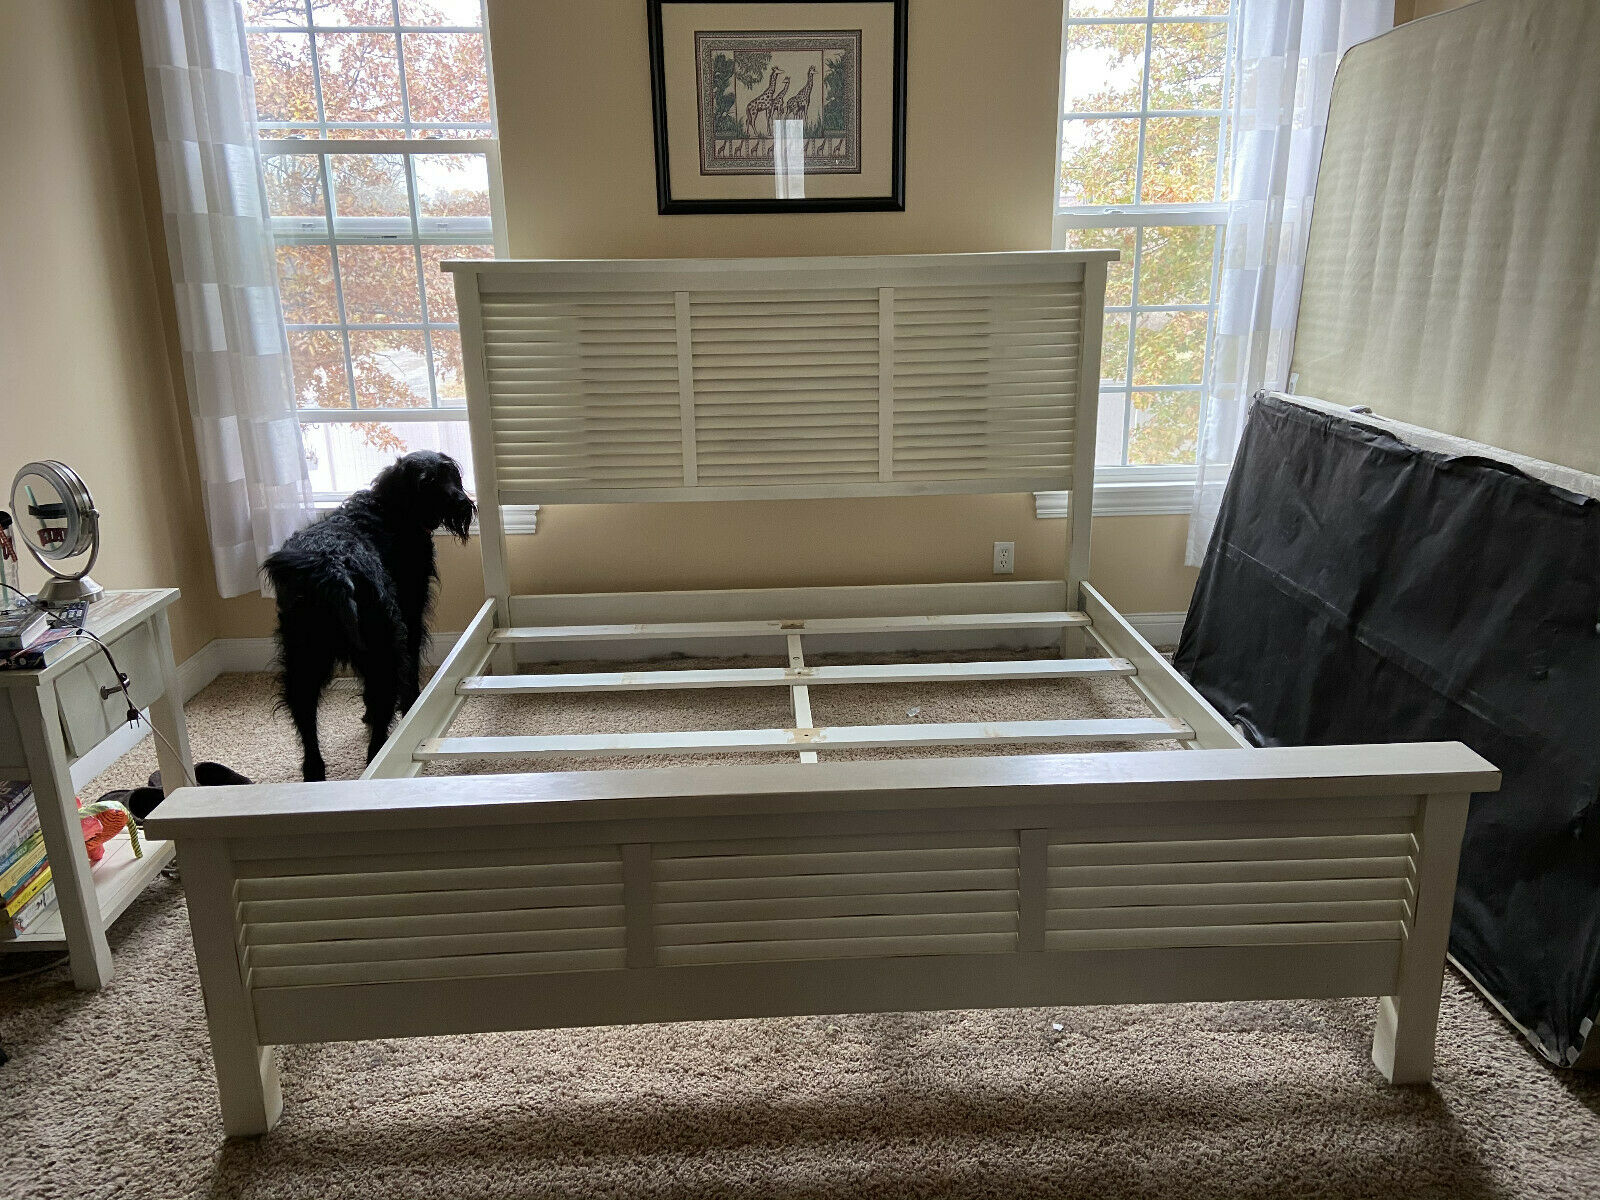 Pottery Barn Stratton Bed With Drawers And Headboard For Sale Online Ebay